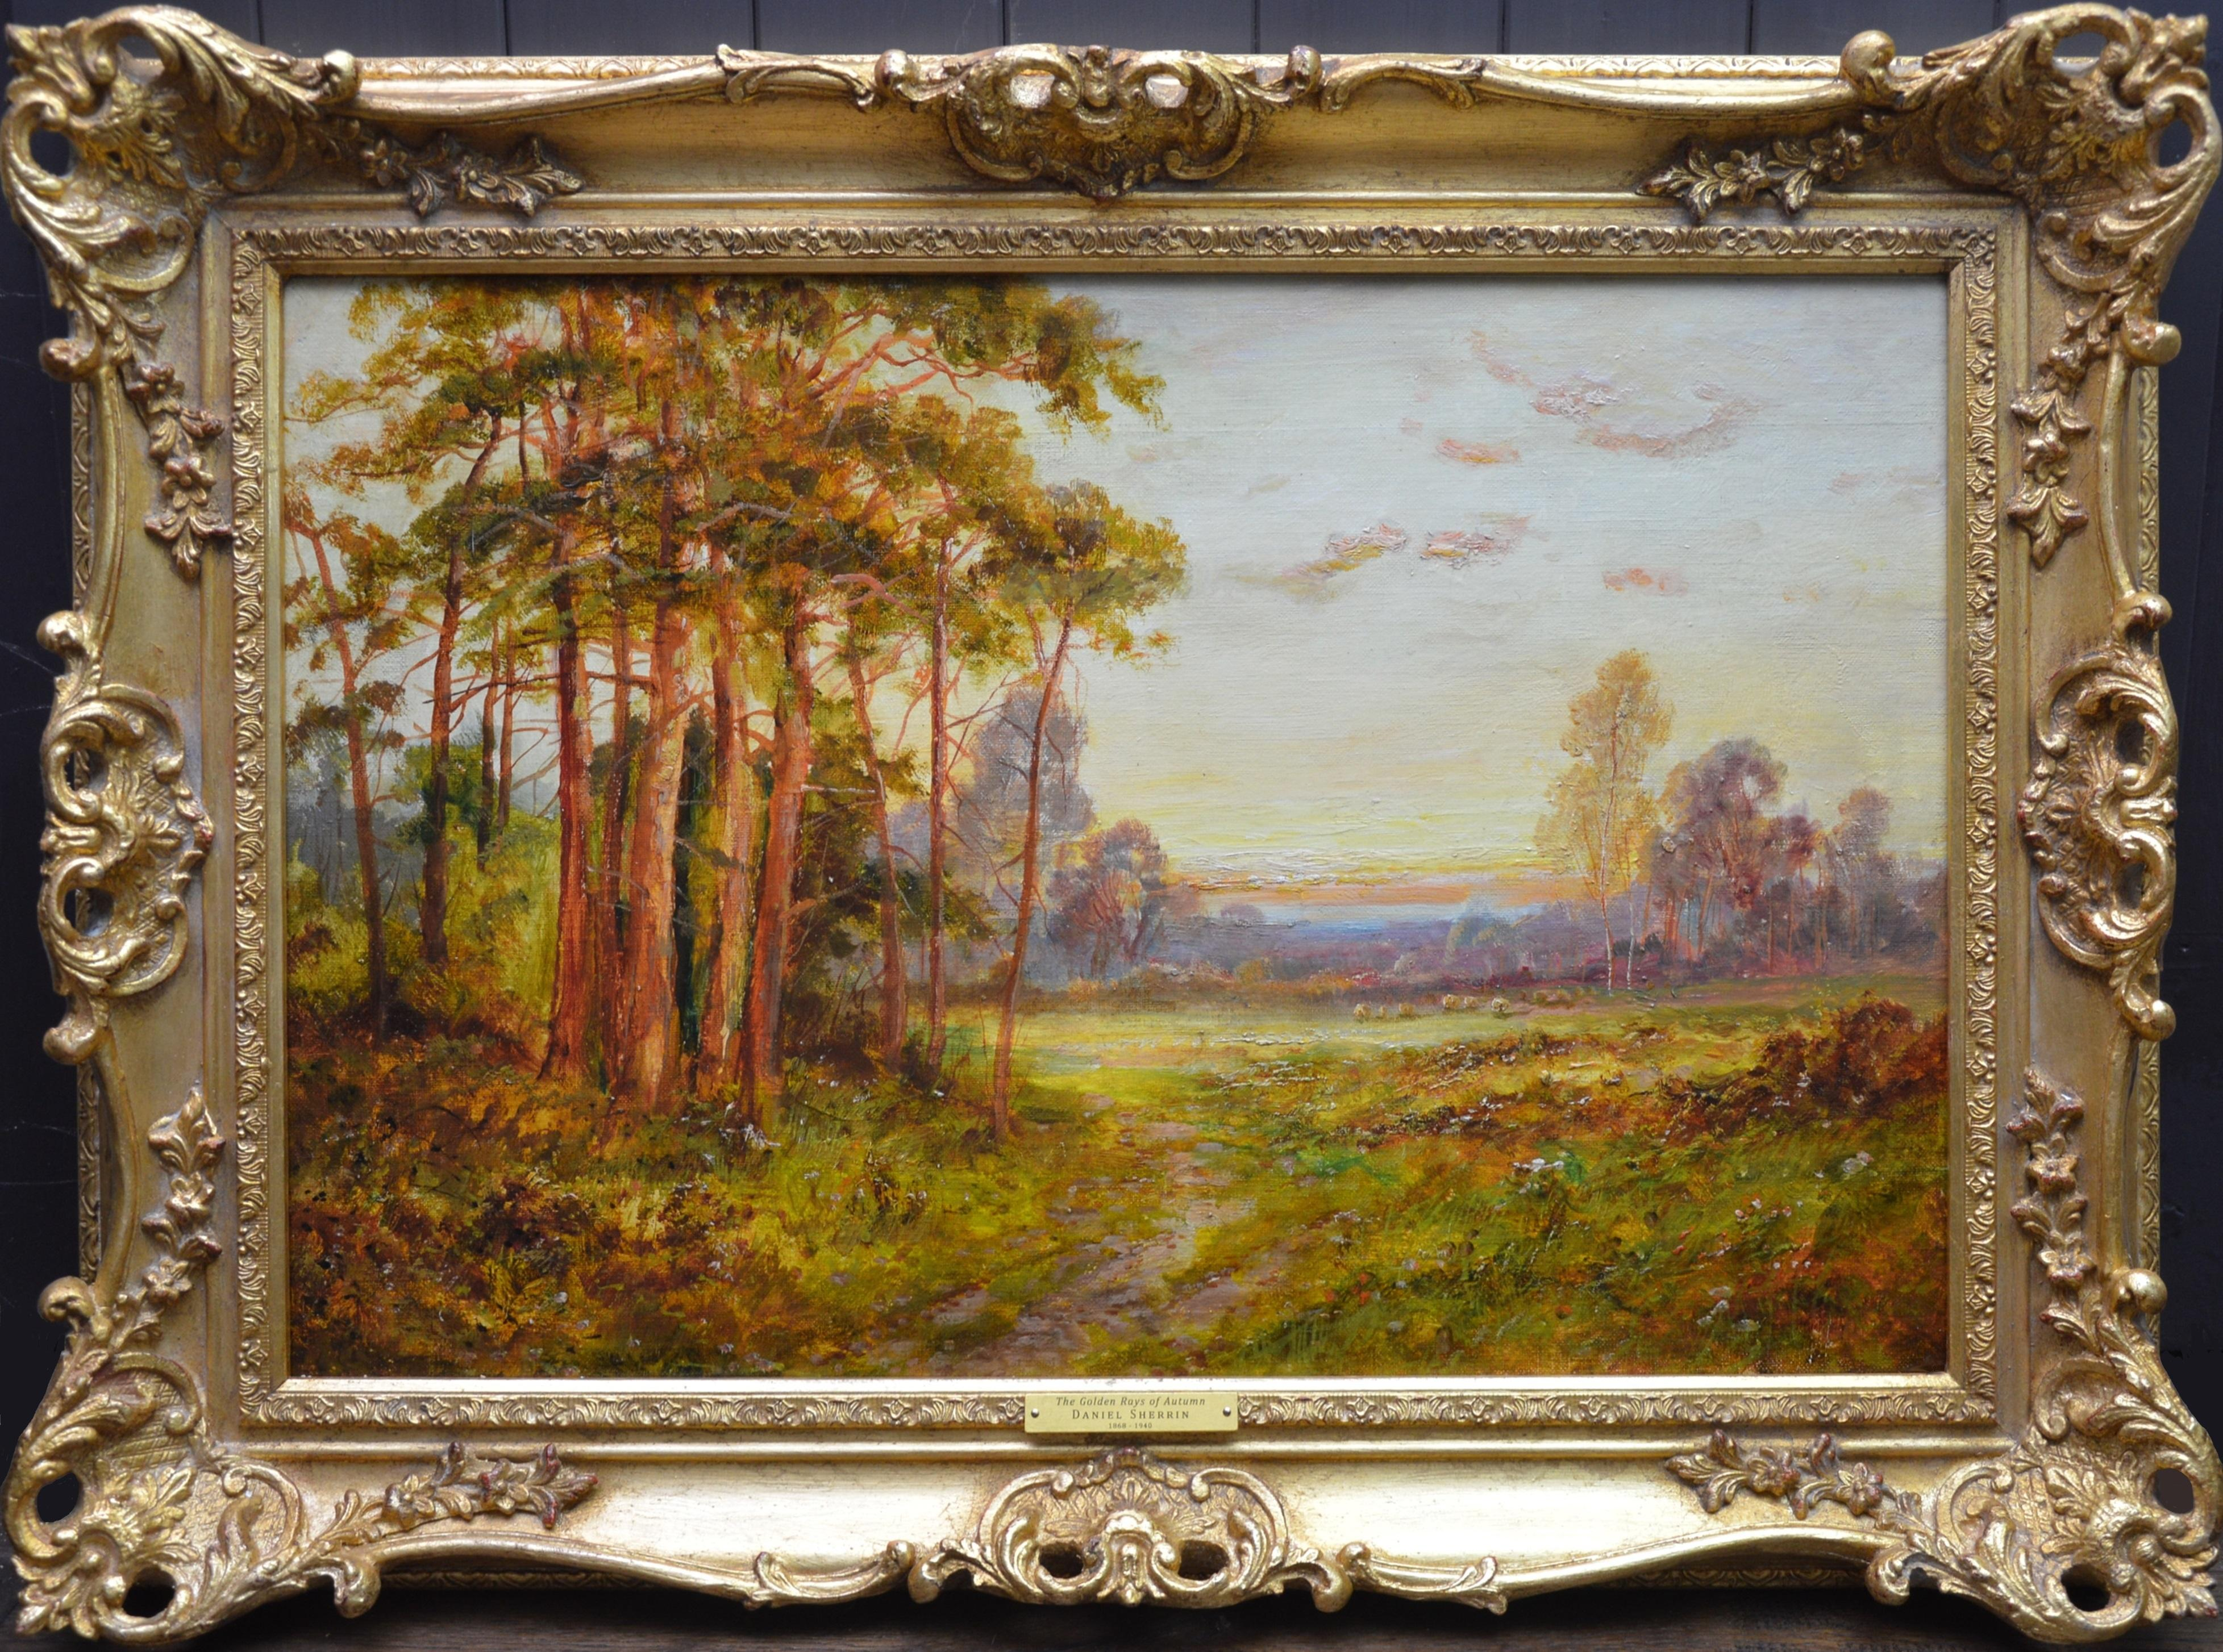 Golden Rays of Autumn - 19th Century Landscape Oil Painting Winnie the Pooh Wood